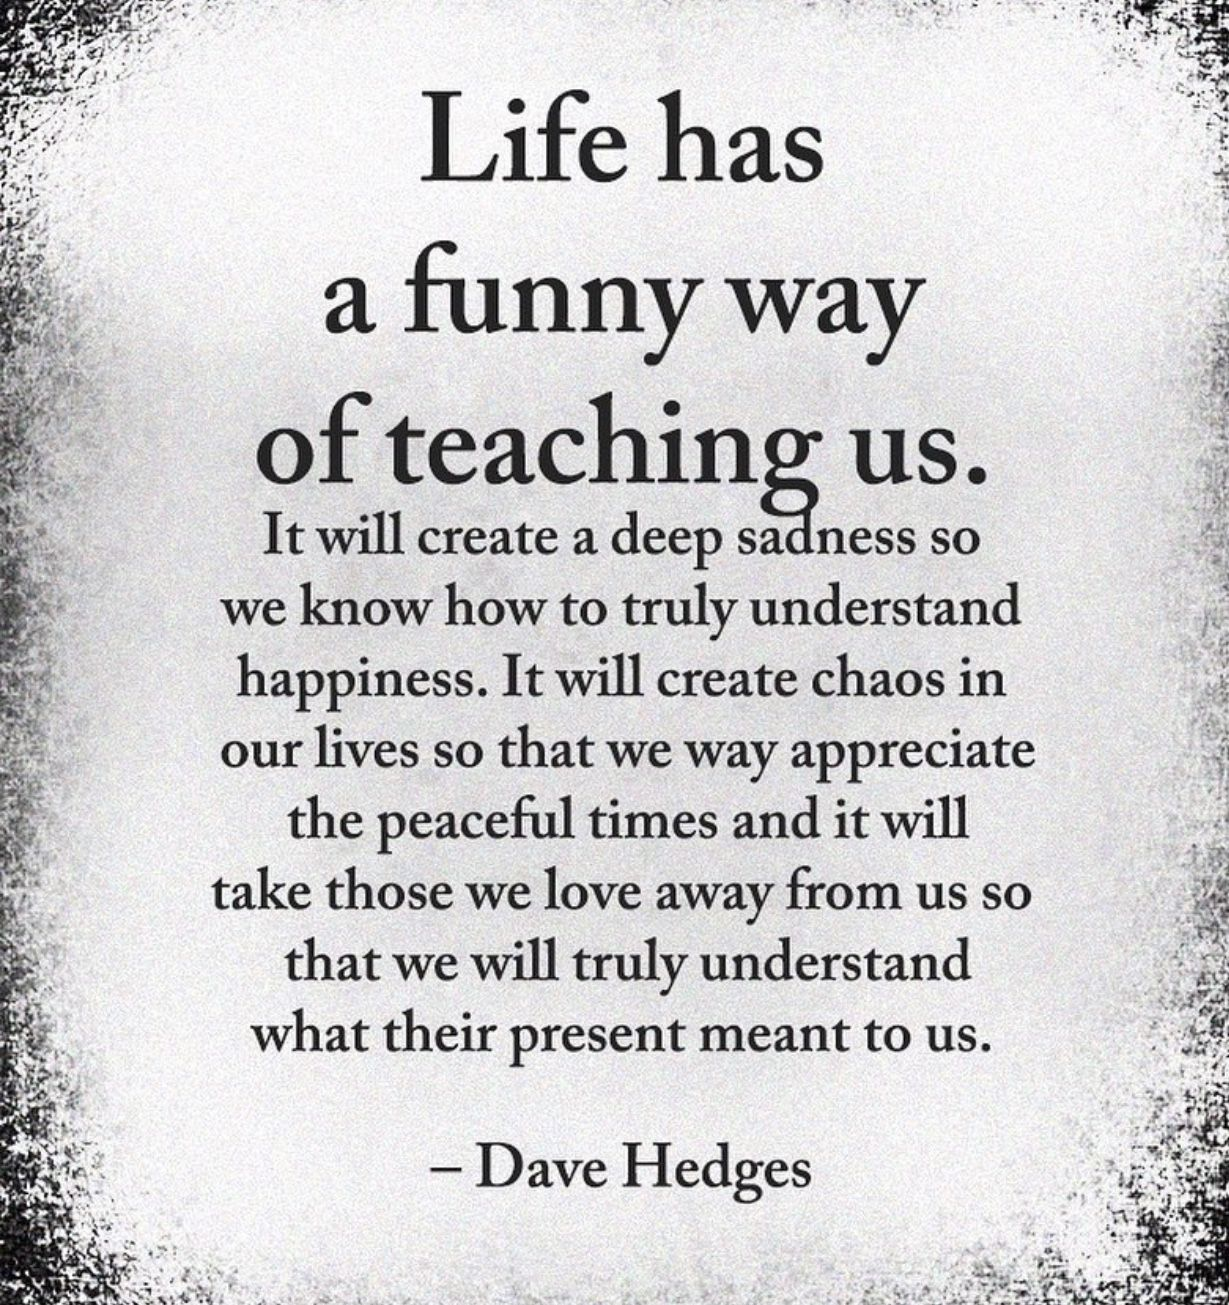 Life Has A Funny Way Of Teaching Us Quote Life Quote Words Quotes Life Quotes Wisdom Quotes